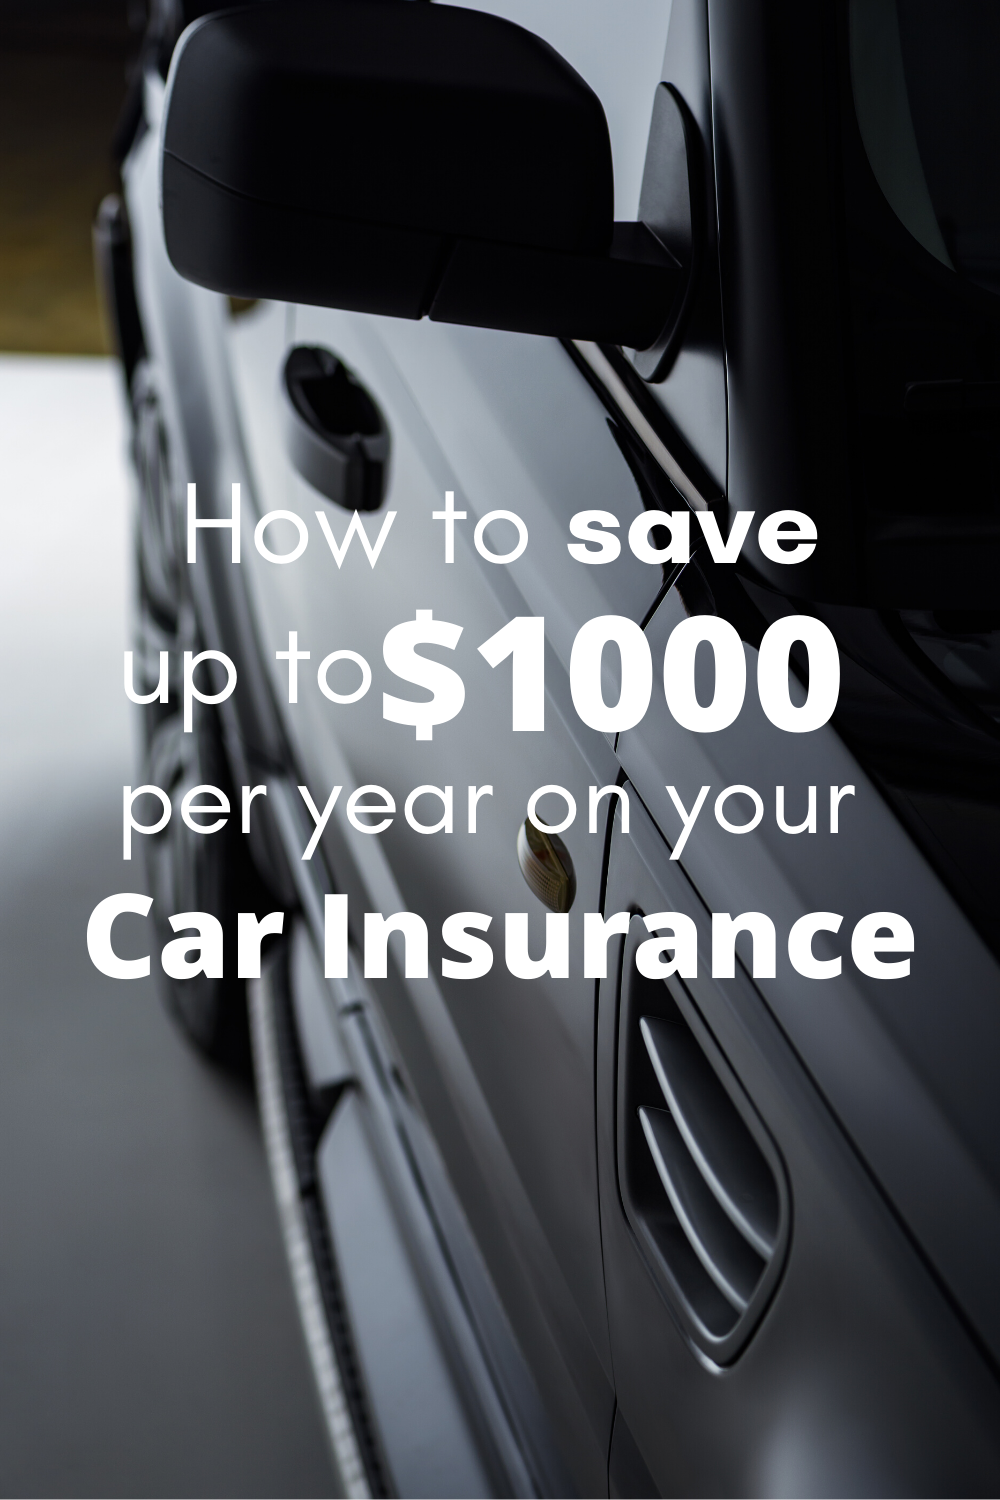 How Do I Find A Car Insurance Near Me In 2020 Saving Money Car